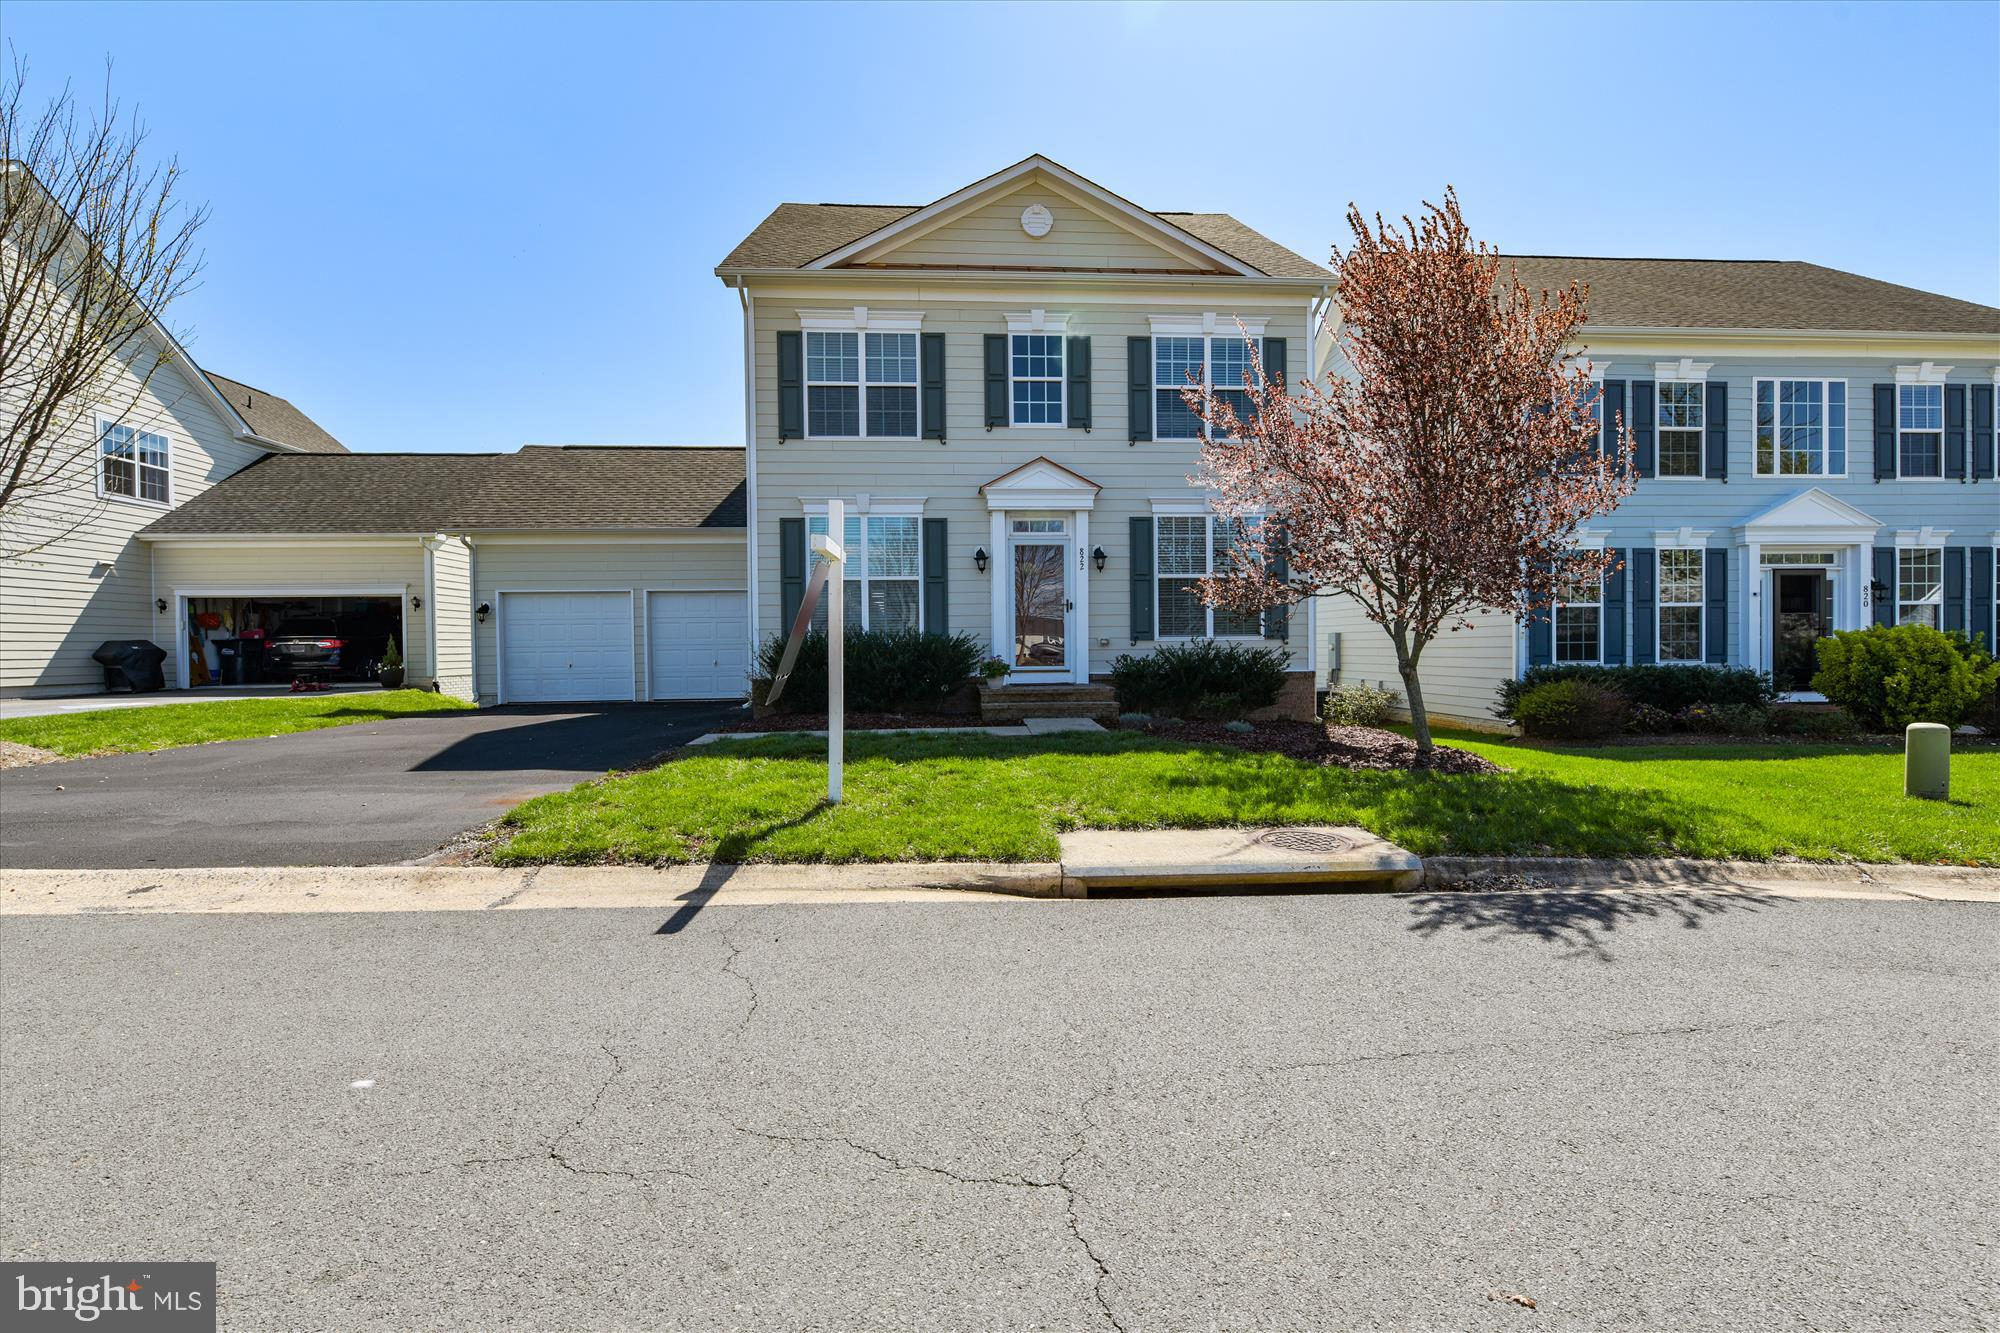 RARE OPPORTUNITY TO LIVE IN THIS HIGHLY SOUGHT-AFTER COMMUNITY CLOSE TO RTE 7, TOWN & SCHOOLS. LESS